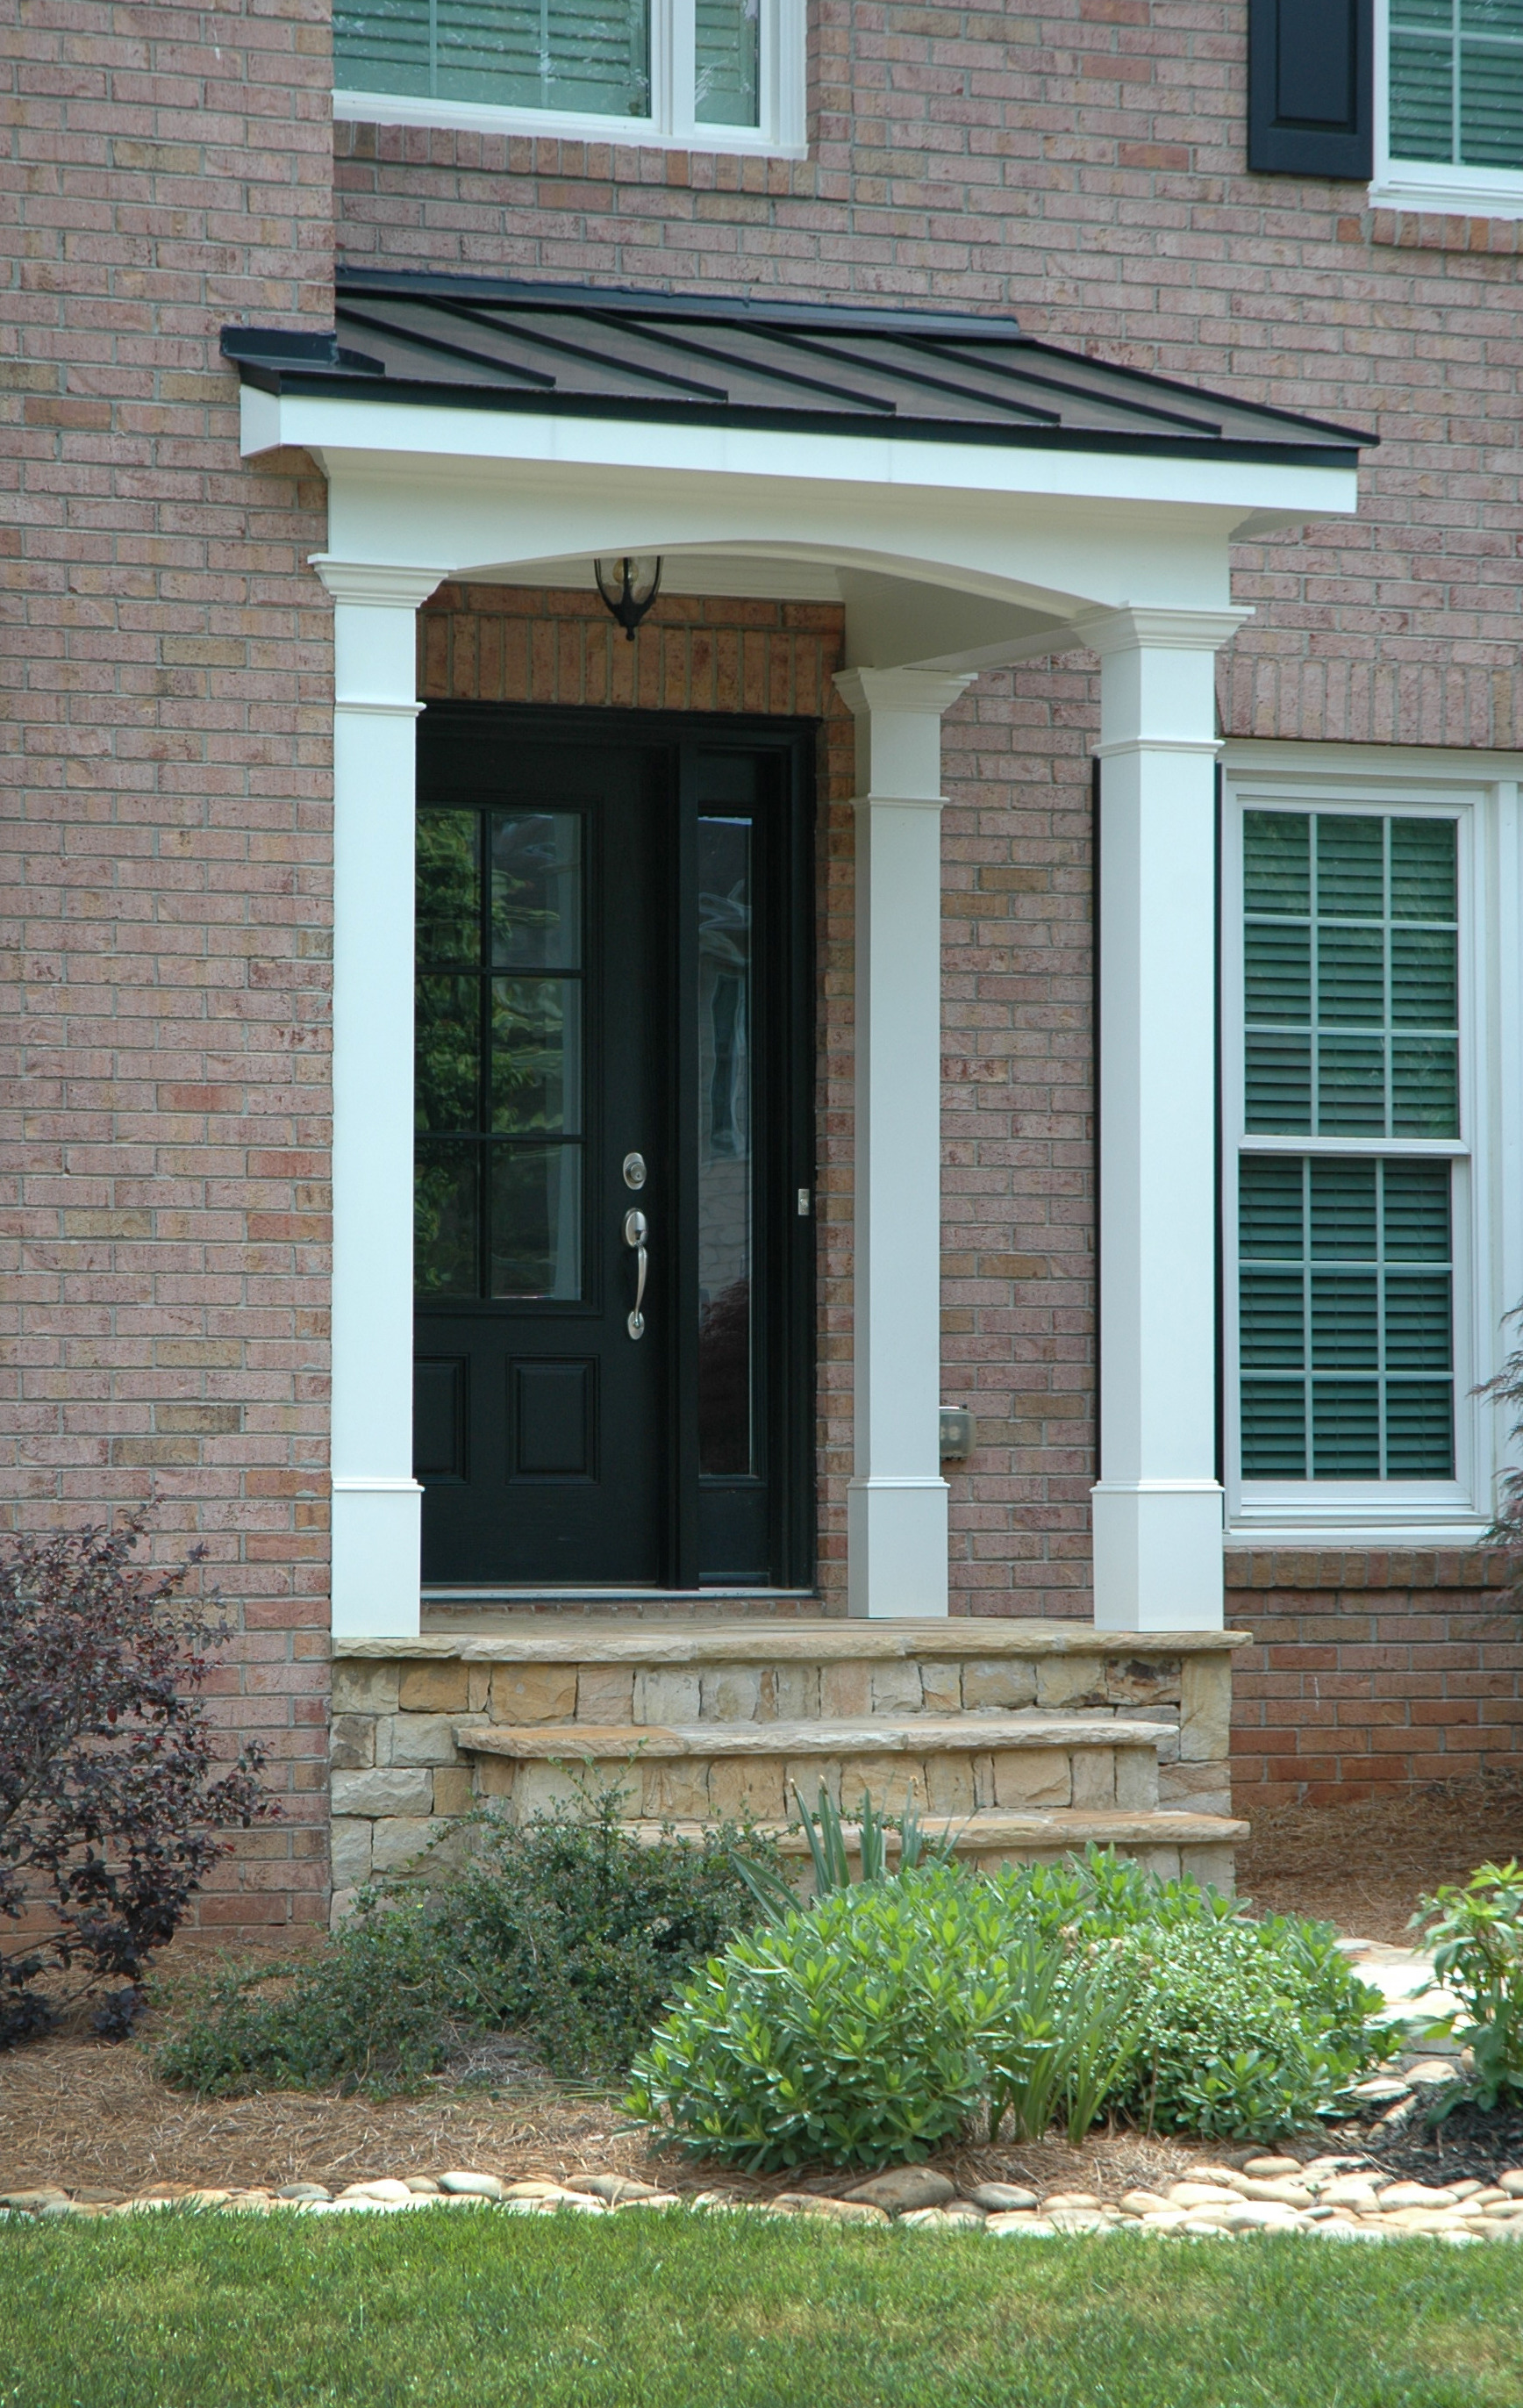 Front Entrance Roof Designs Lovely Small Porch Roof Plans and Chimney Ever Simple Framing